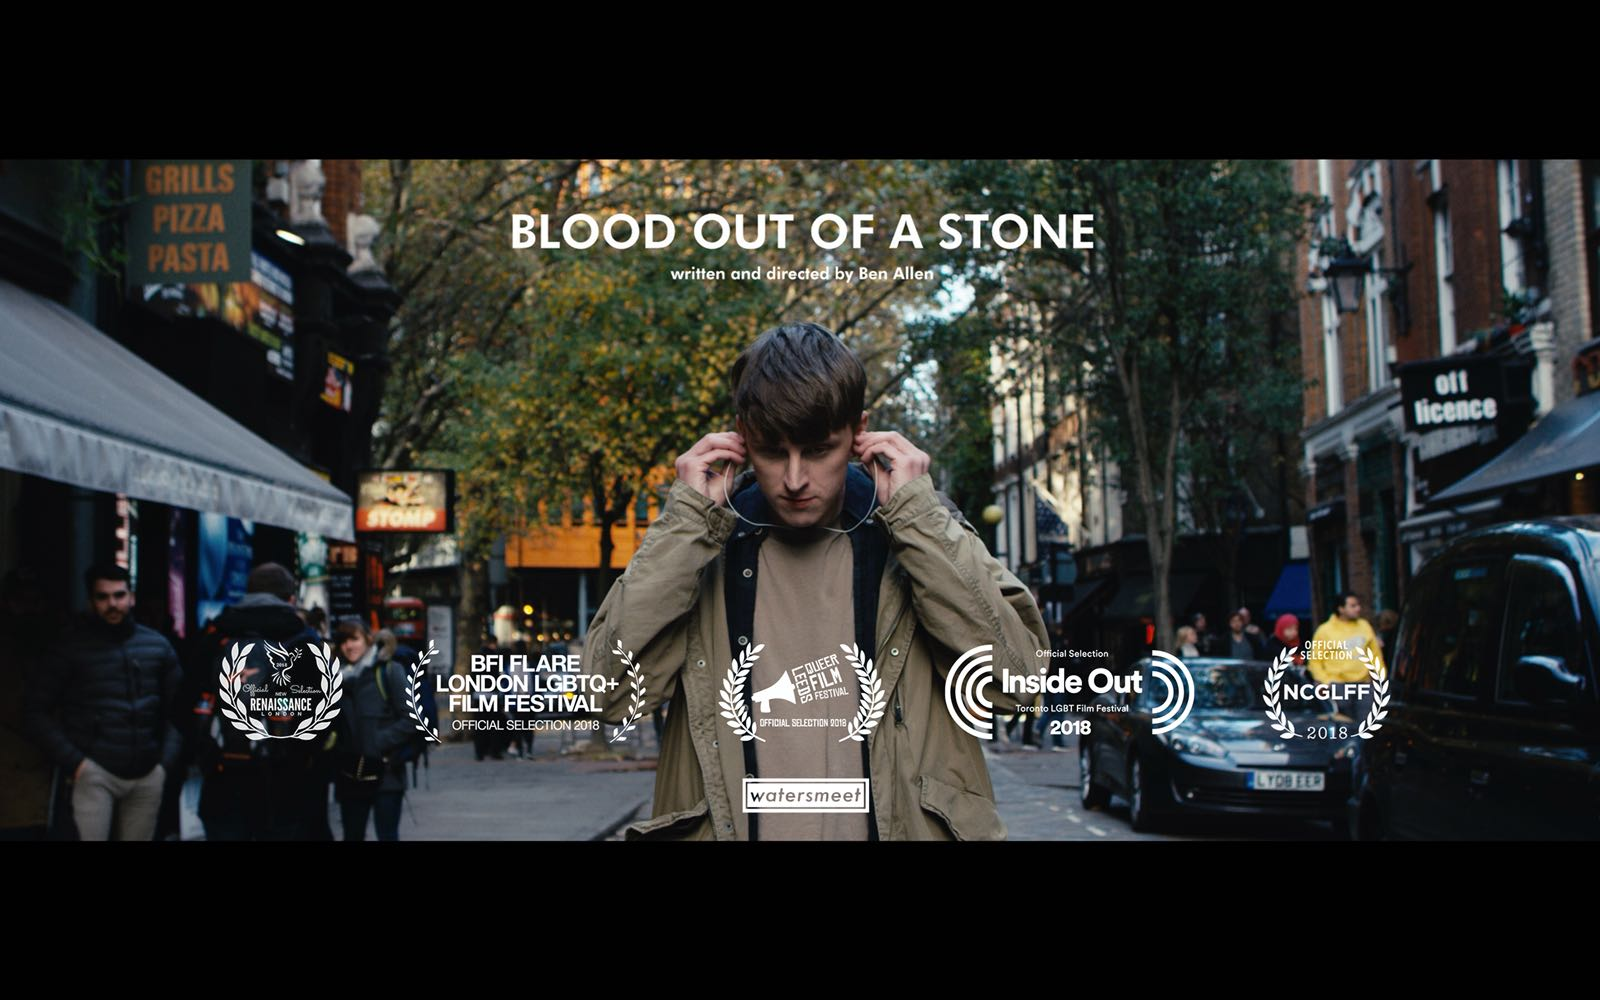 Blood Out of a Stone - Directed by Ben Allen (unreleased)